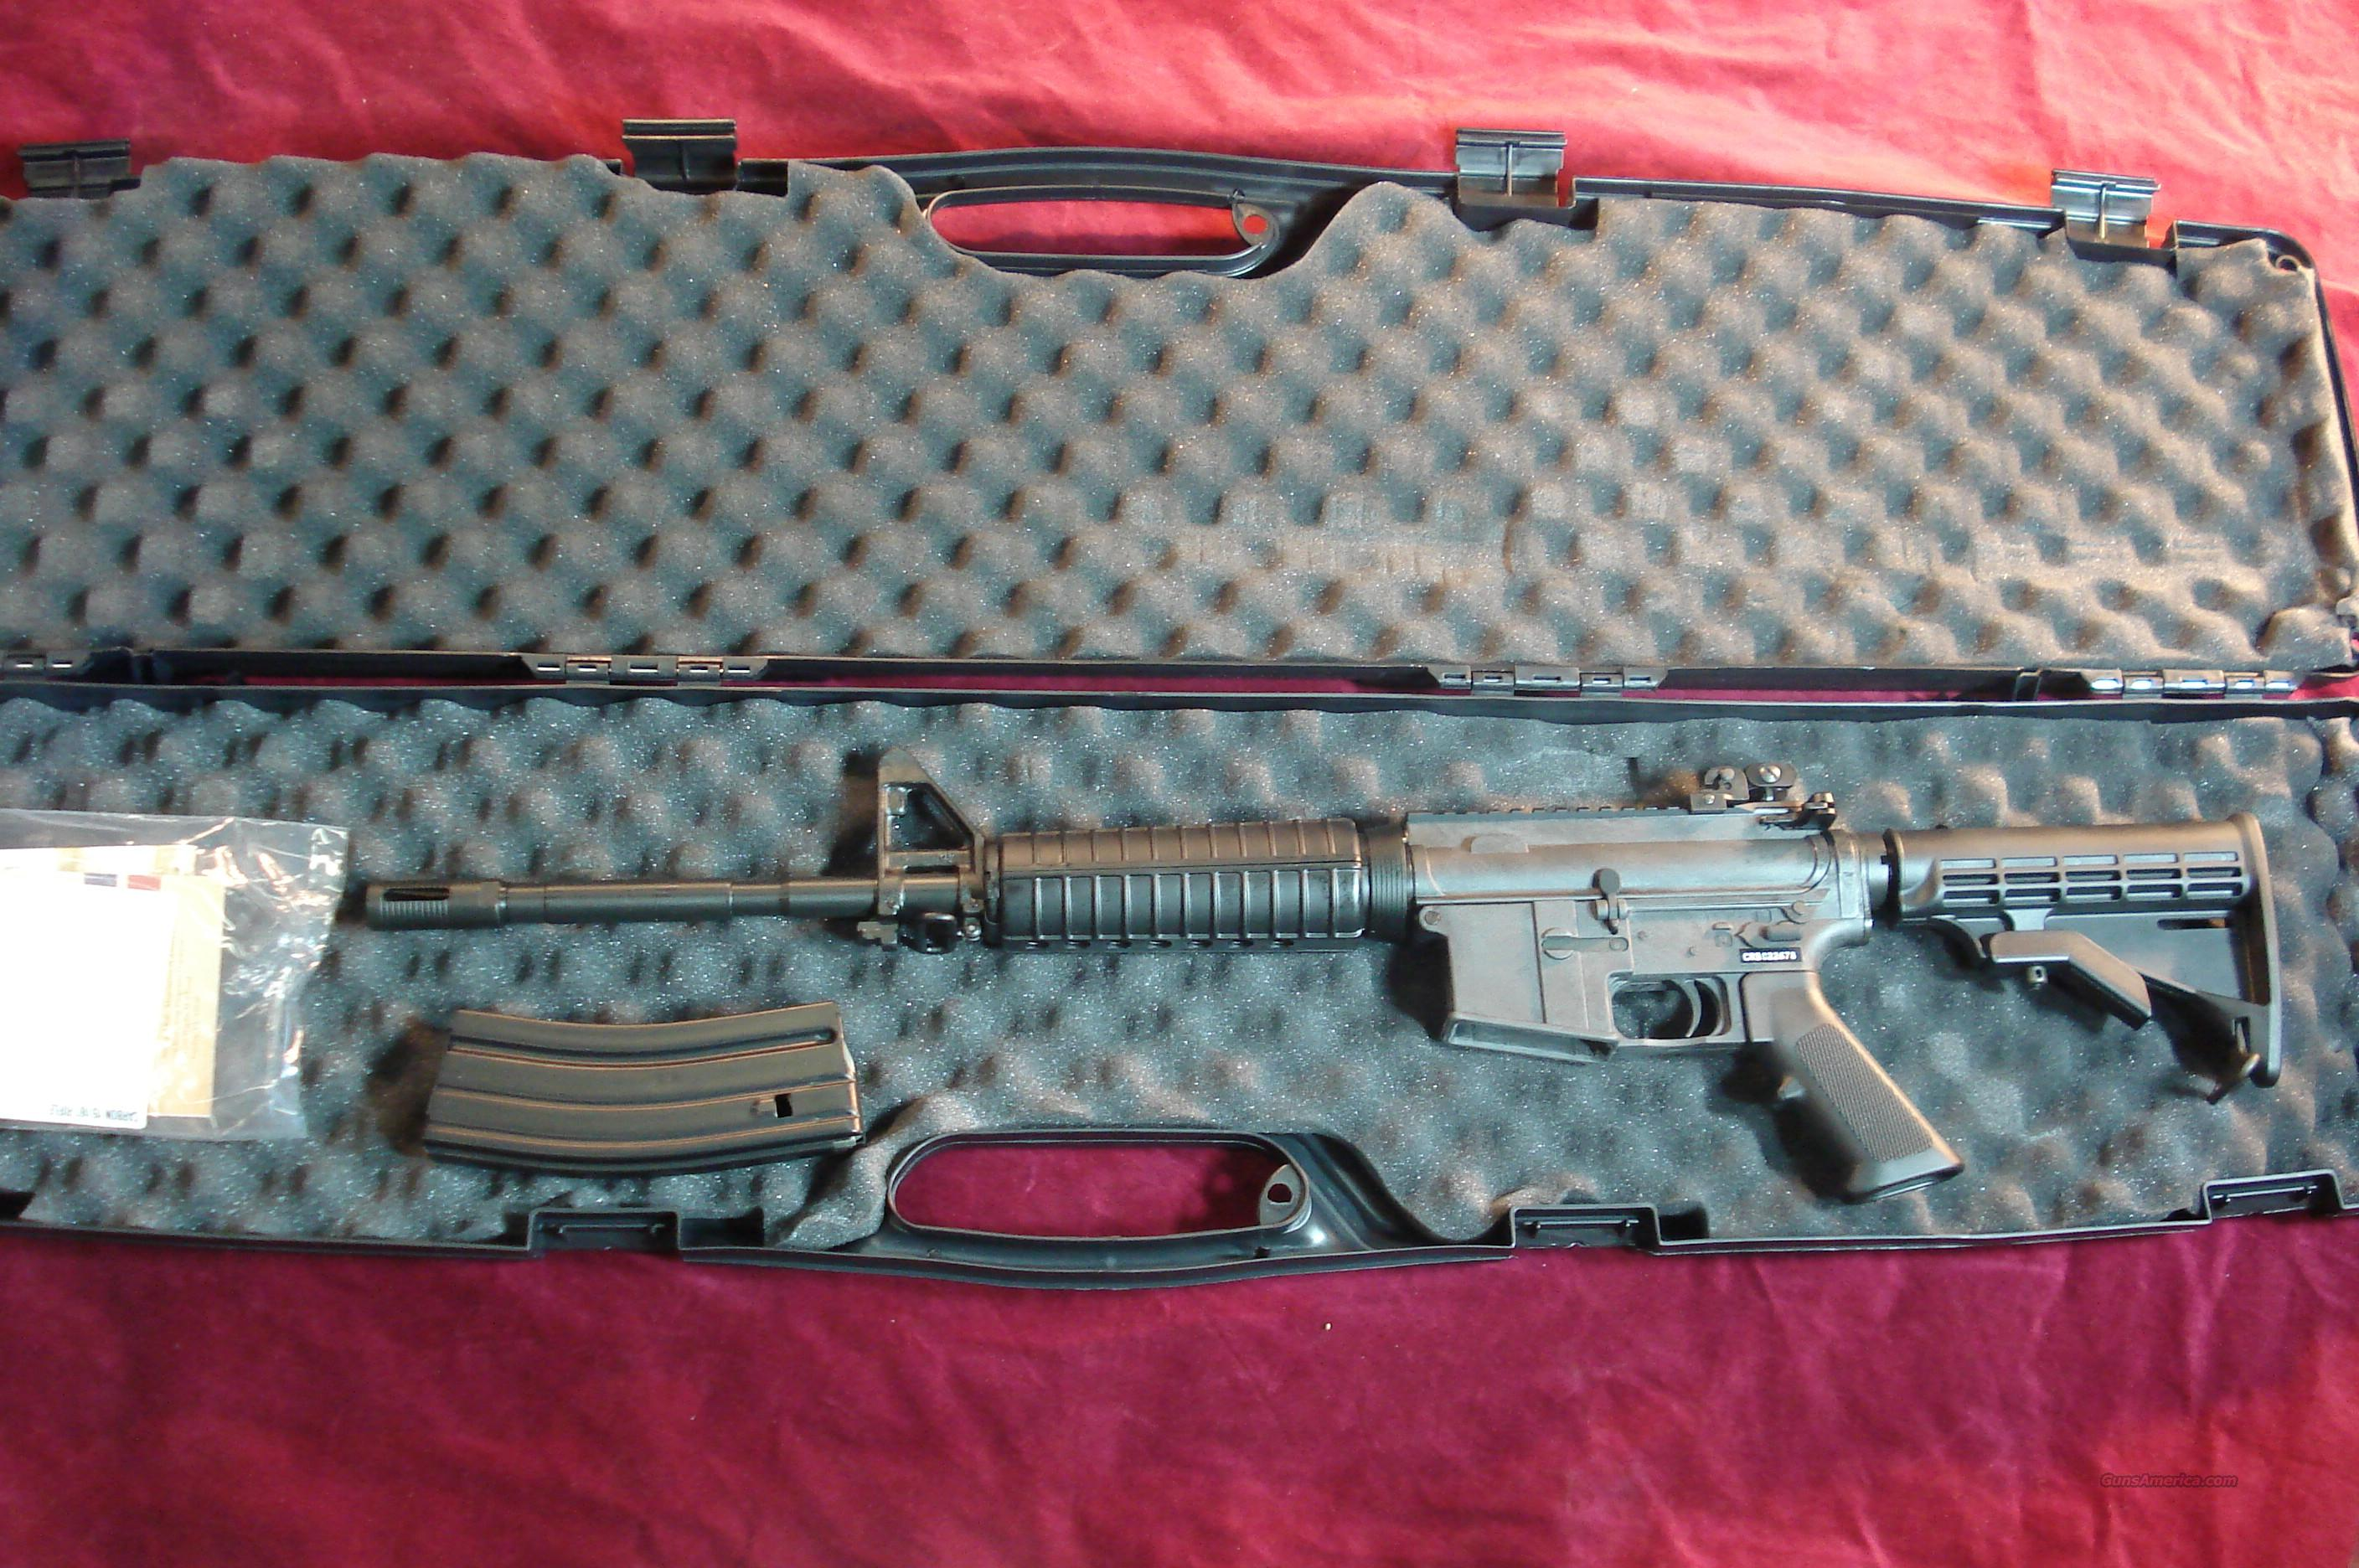 BUSHMASTER CARBON 15 5.56/223CAL. WITH W/FOLDING REAR SIGHT NEW  Guns > Rifles > Bushmaster Rifles > Complete Rifles